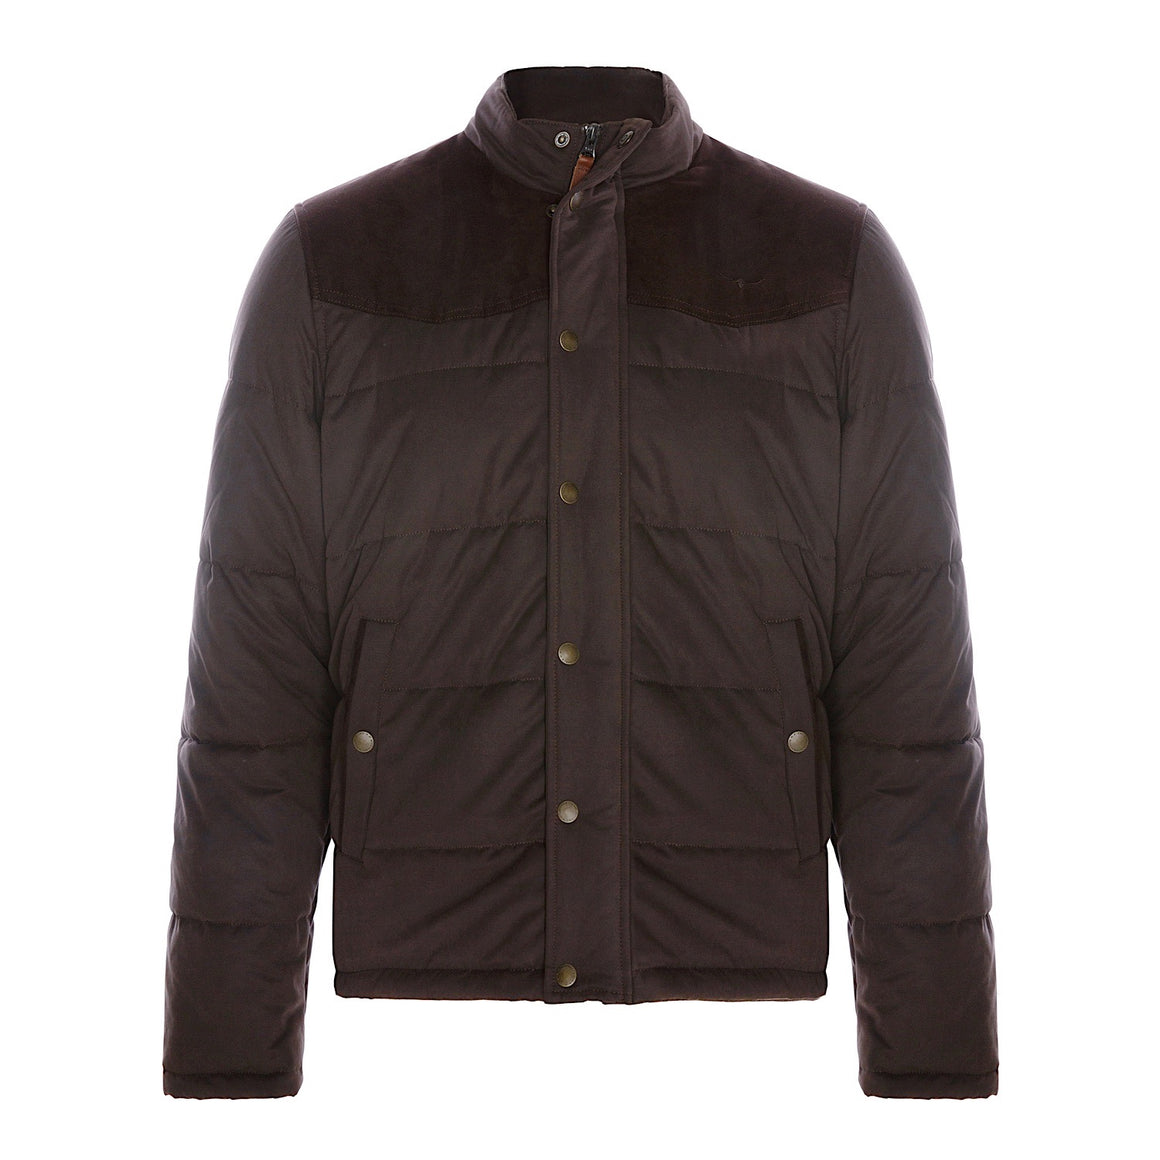 R.M.Williams Carnarvon Jacket Chocolate